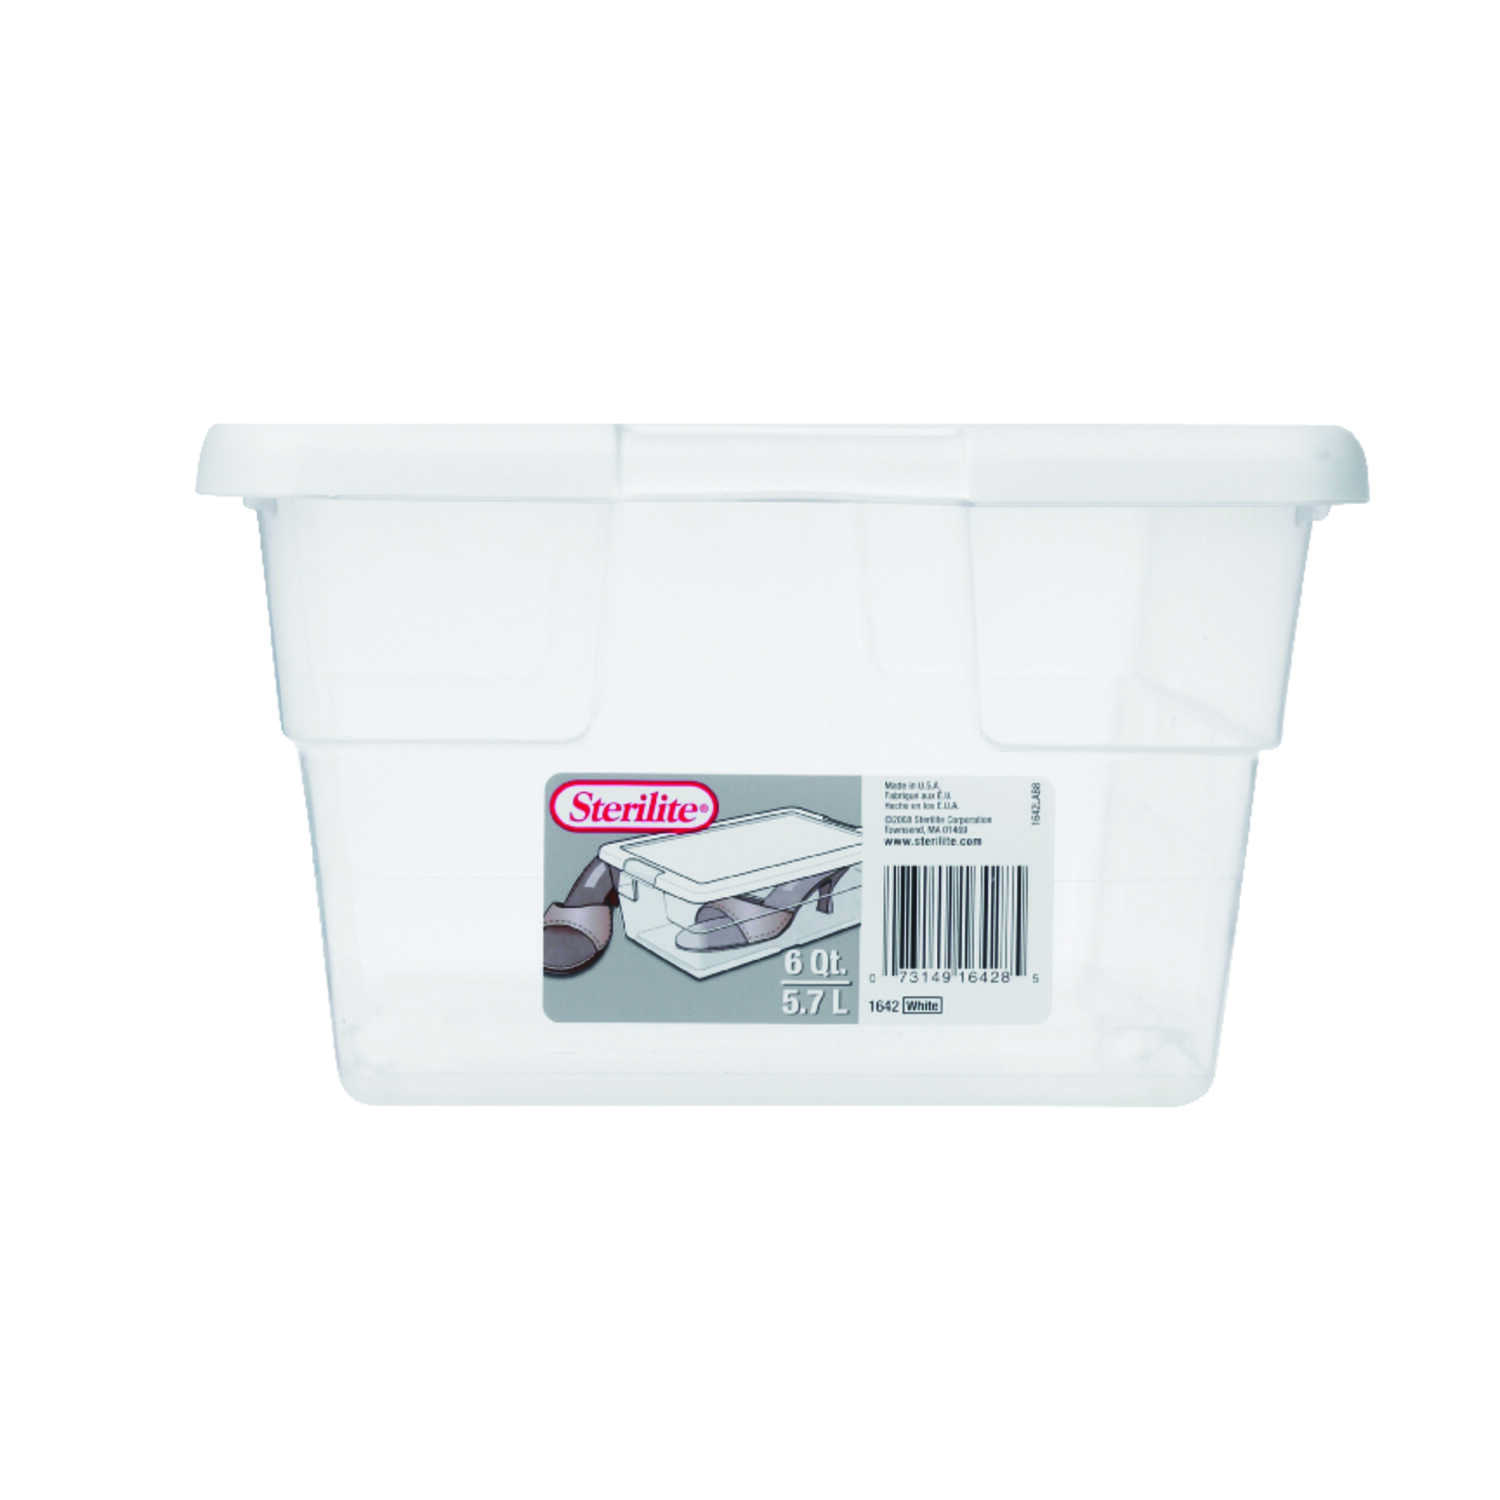 Sterilite  4.875 in. H x 8.25 in. W x 13.625 in. D Stackable Storage Box